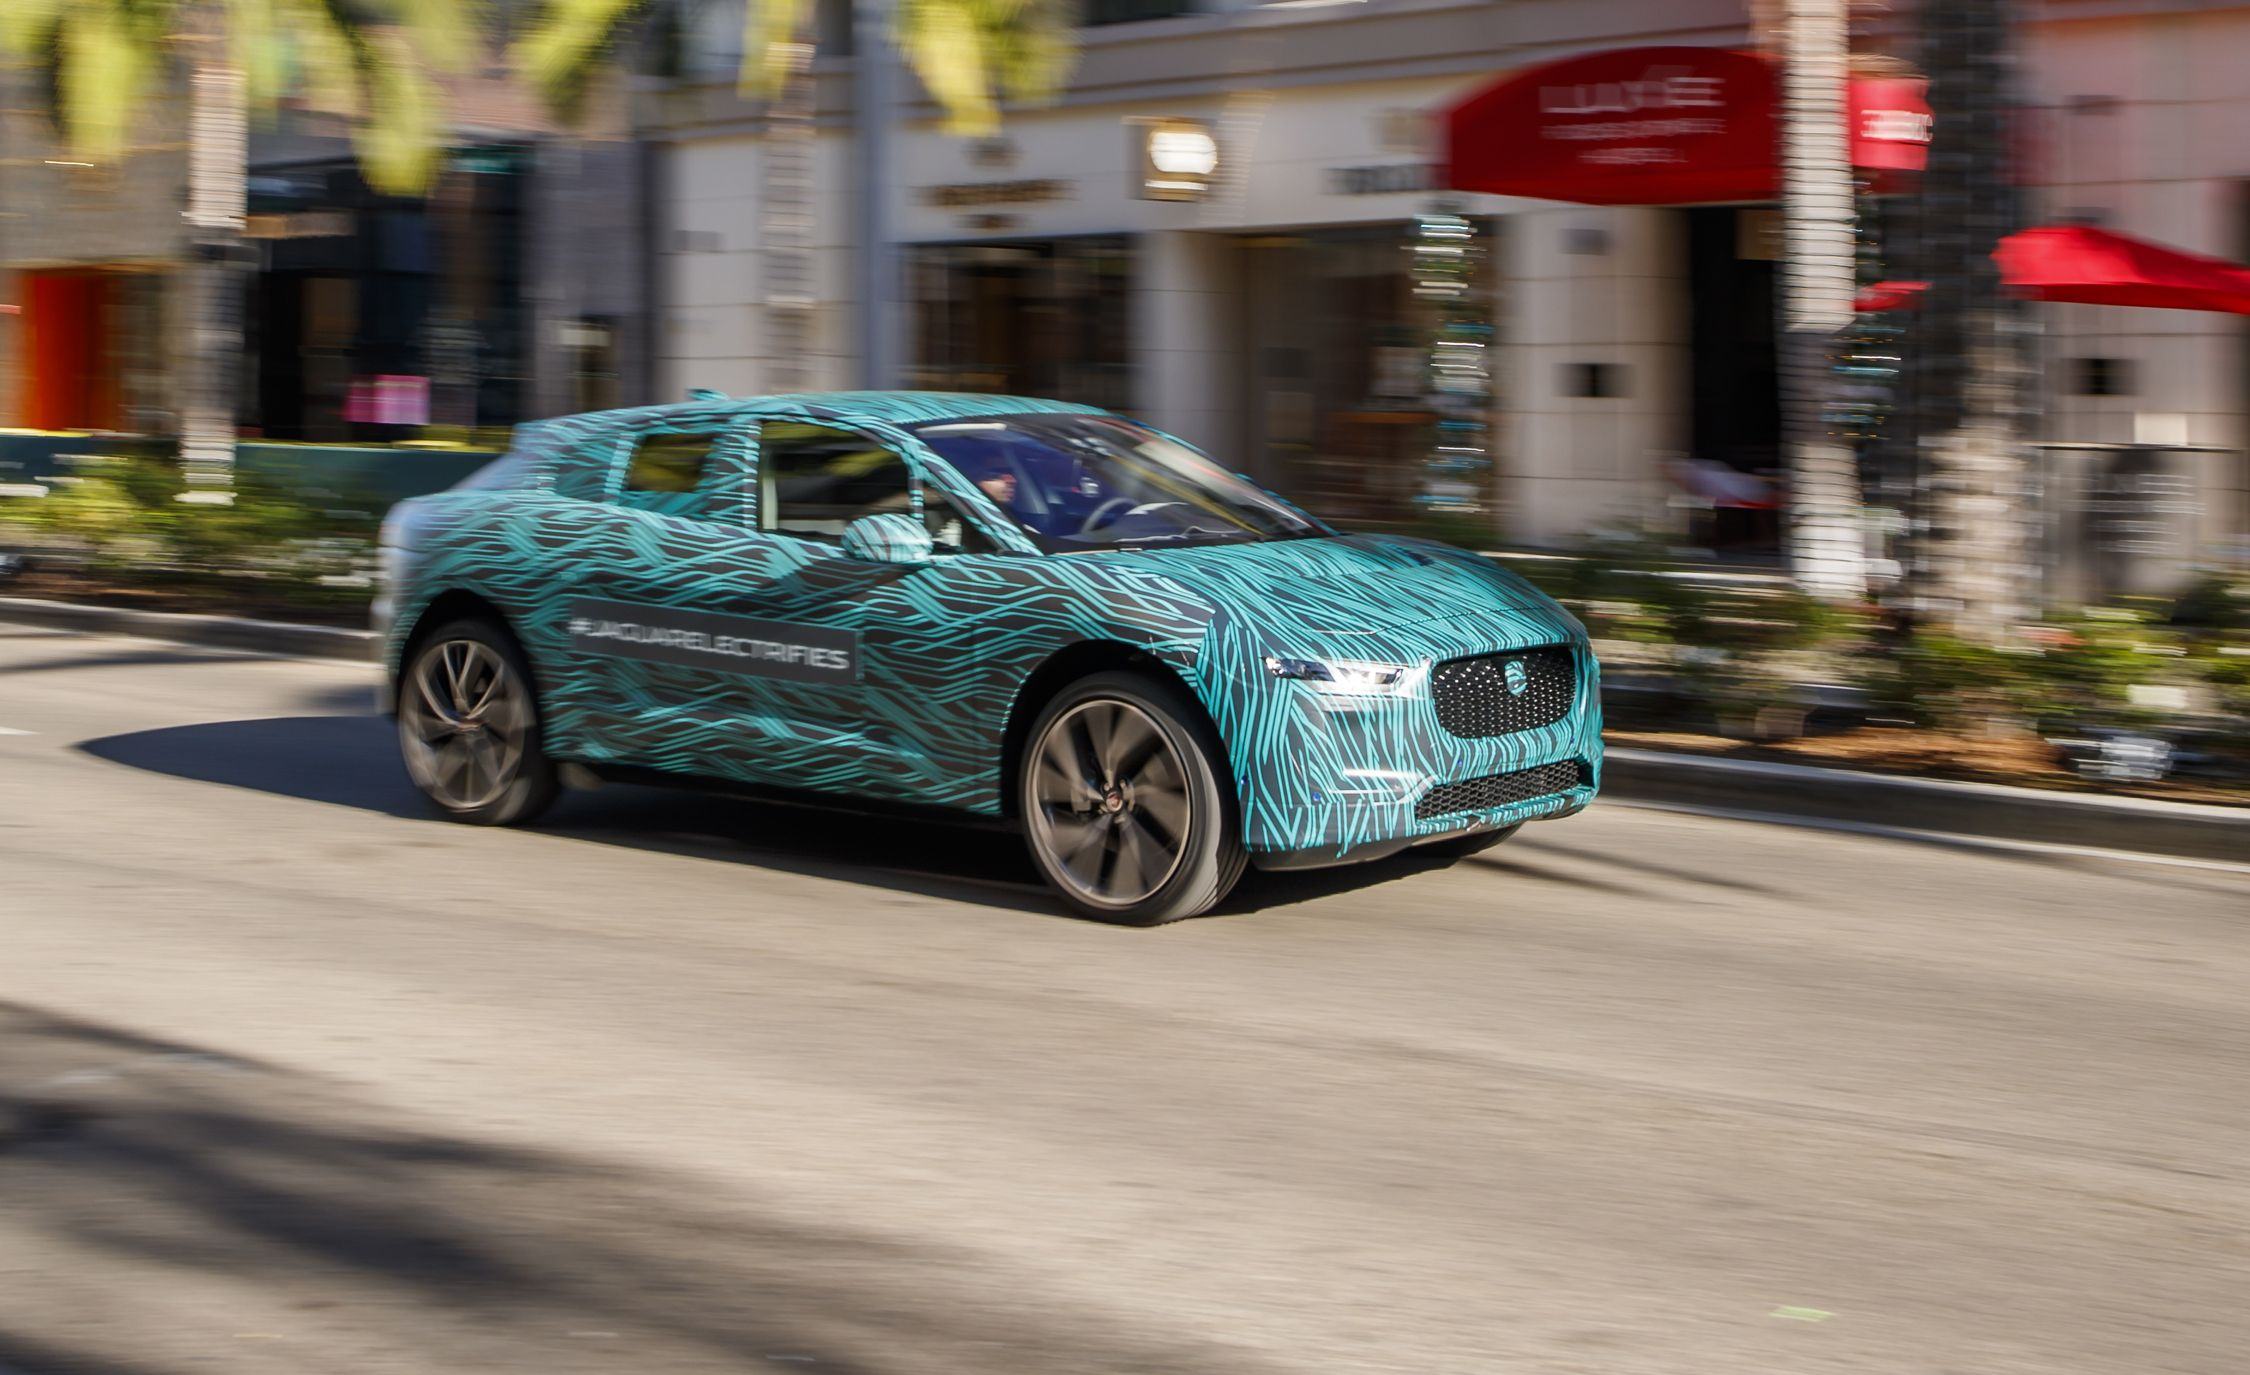 2019 Jaguar I Pace Electric Suv Prototype Ride Review Car And Driver